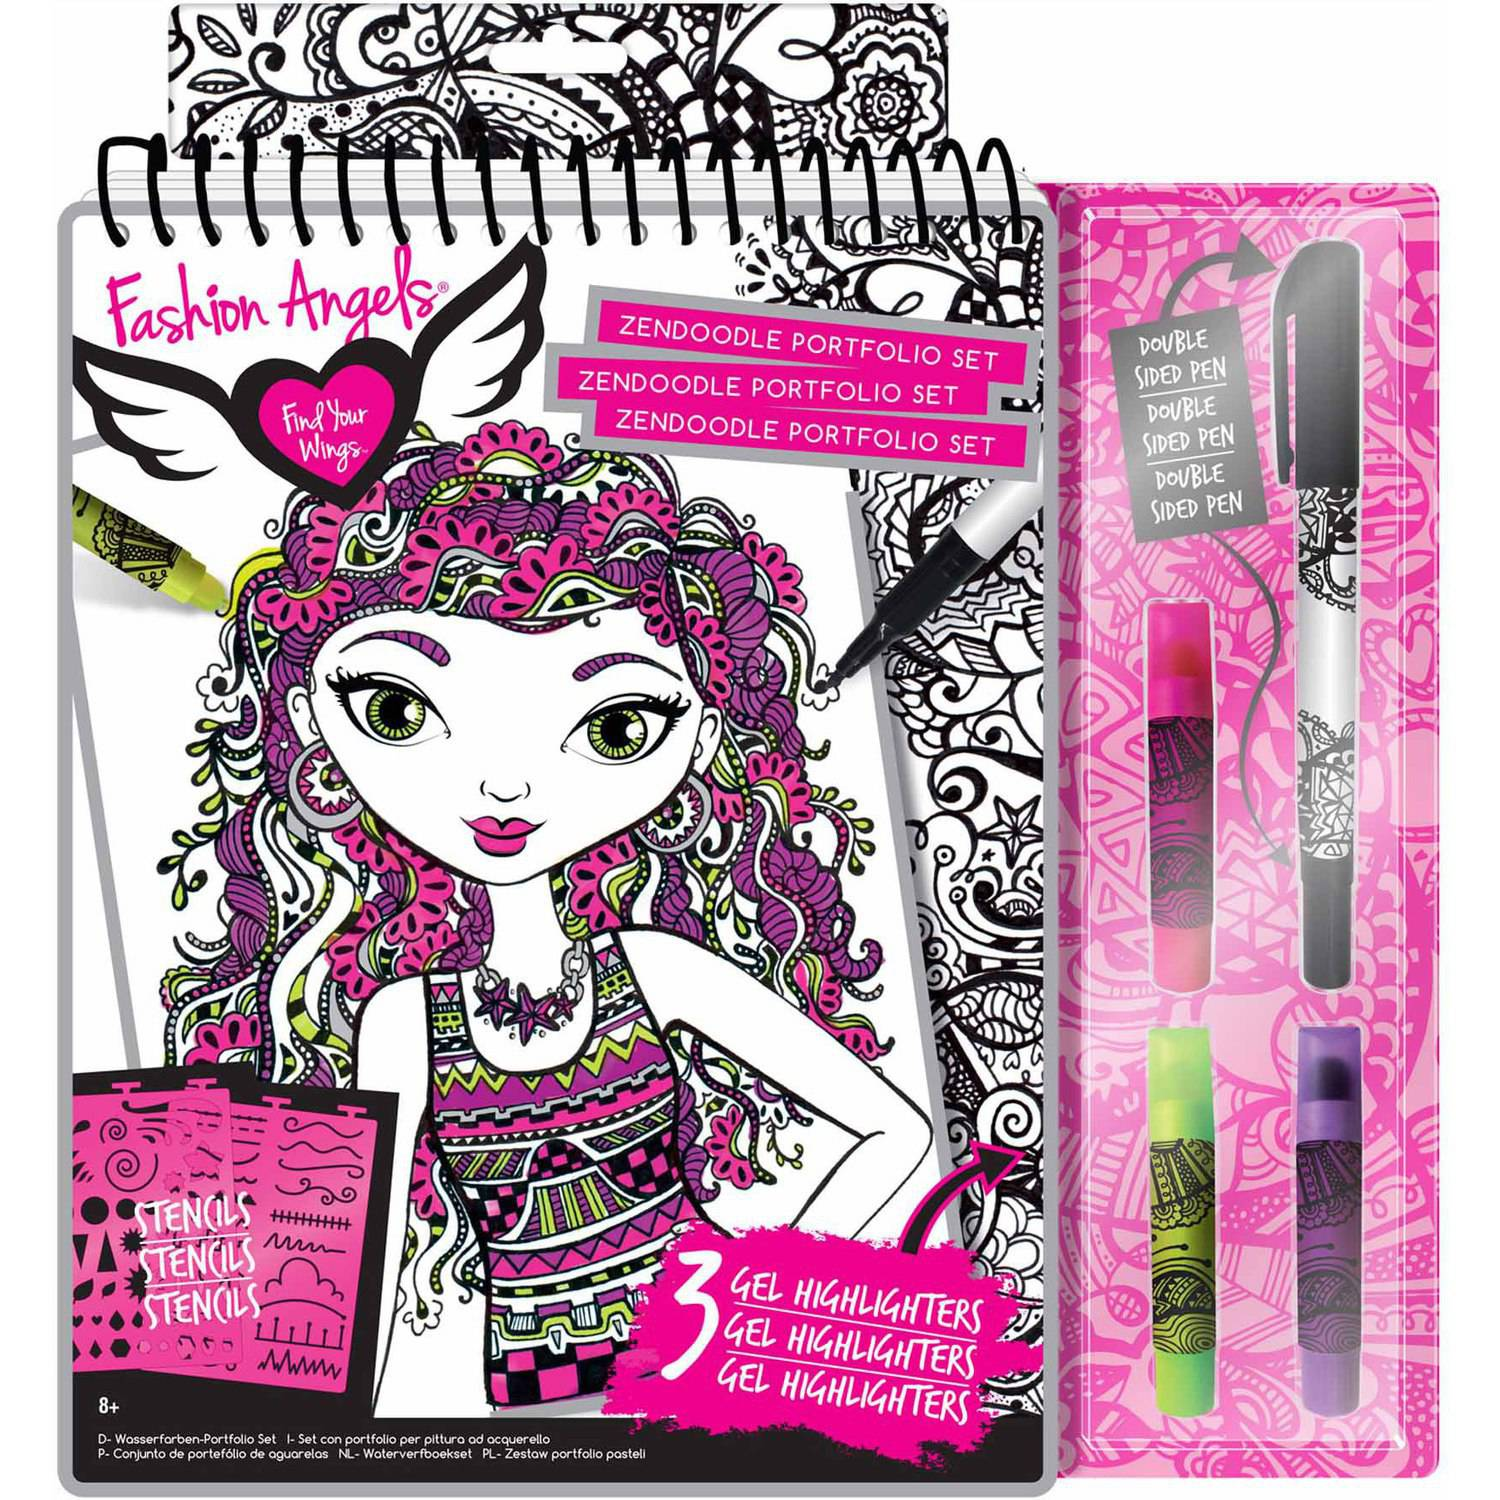 Fashion Angels Zendoodle Illustration Portfoloio Set Walmart